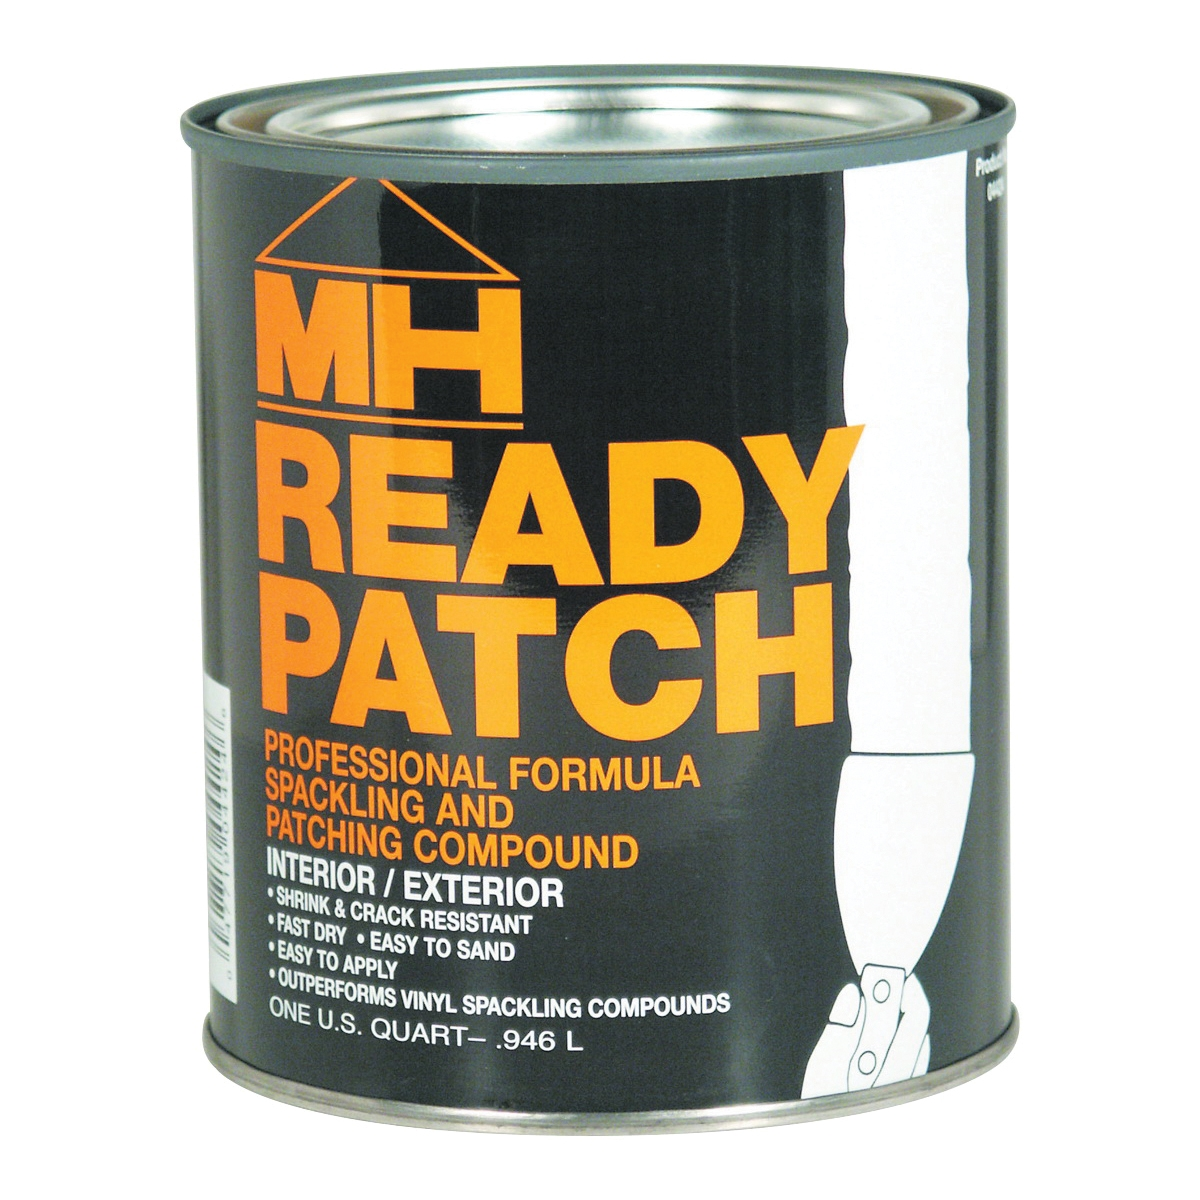 Picture of ZINSSER 4428 Spackling and Patching Compound Off-White, Off-White, 1 pt, Can